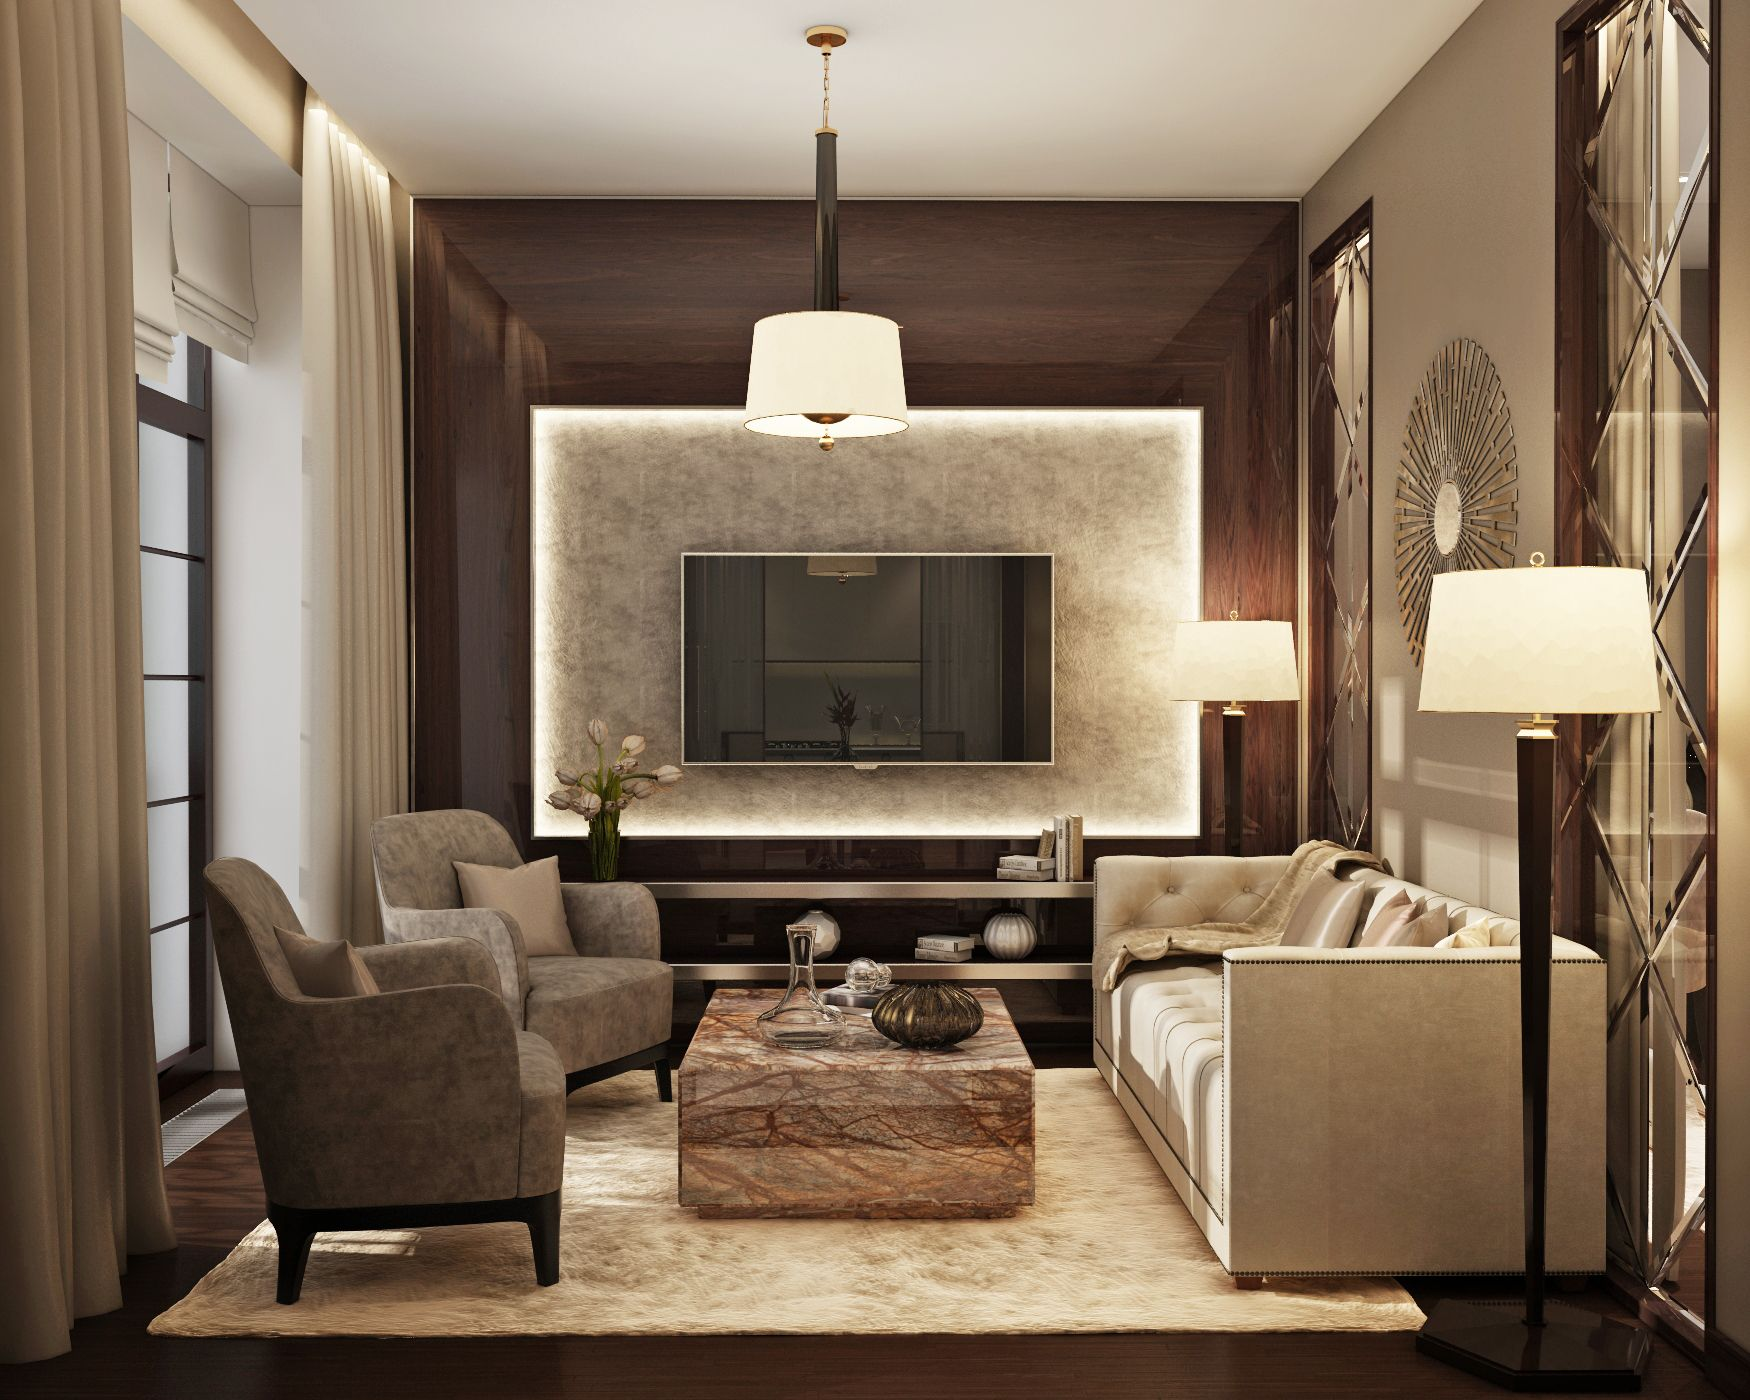 luxury apartment living room ideas coffee table for marchenko pazyuk design small interiors in 2019 designs